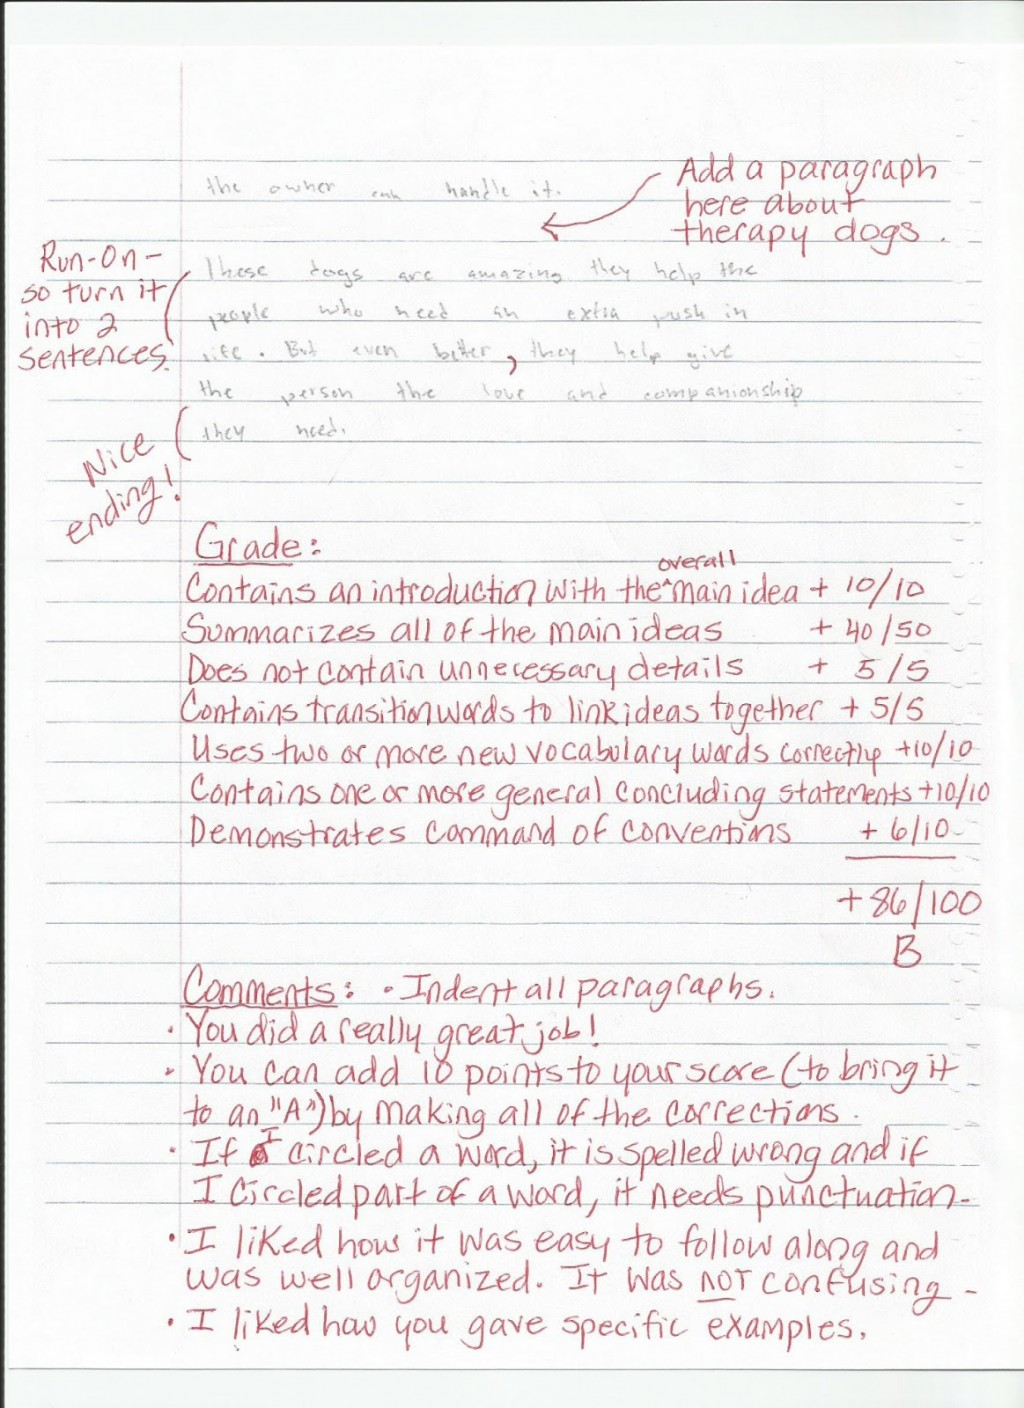 1984 and brave new world compare and contrast essay